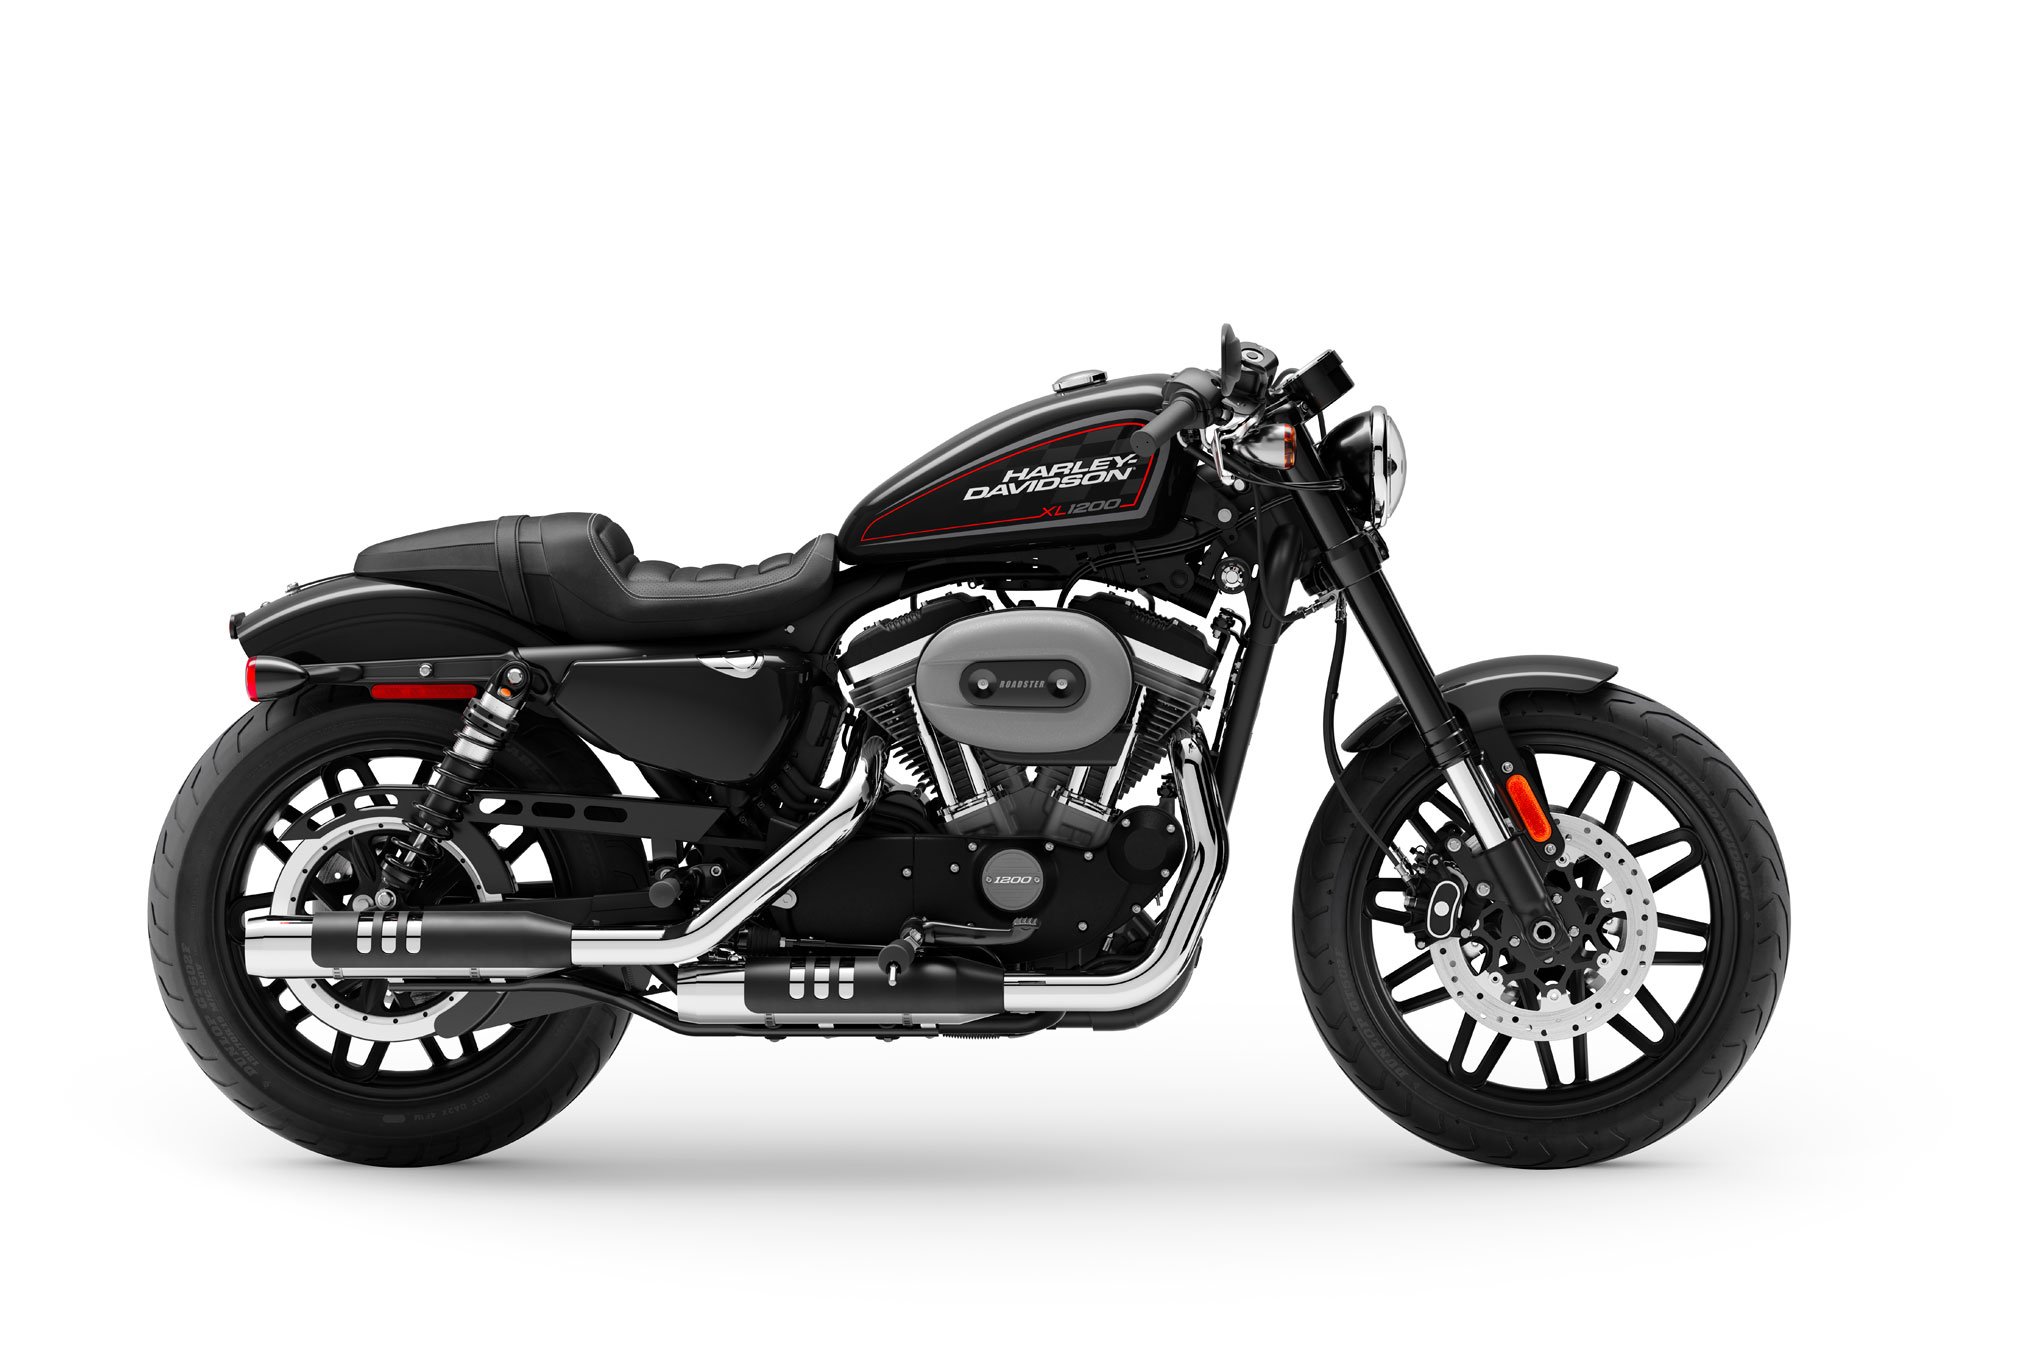 2019 harley davidson roadster guide total motorcycle. Black Bedroom Furniture Sets. Home Design Ideas